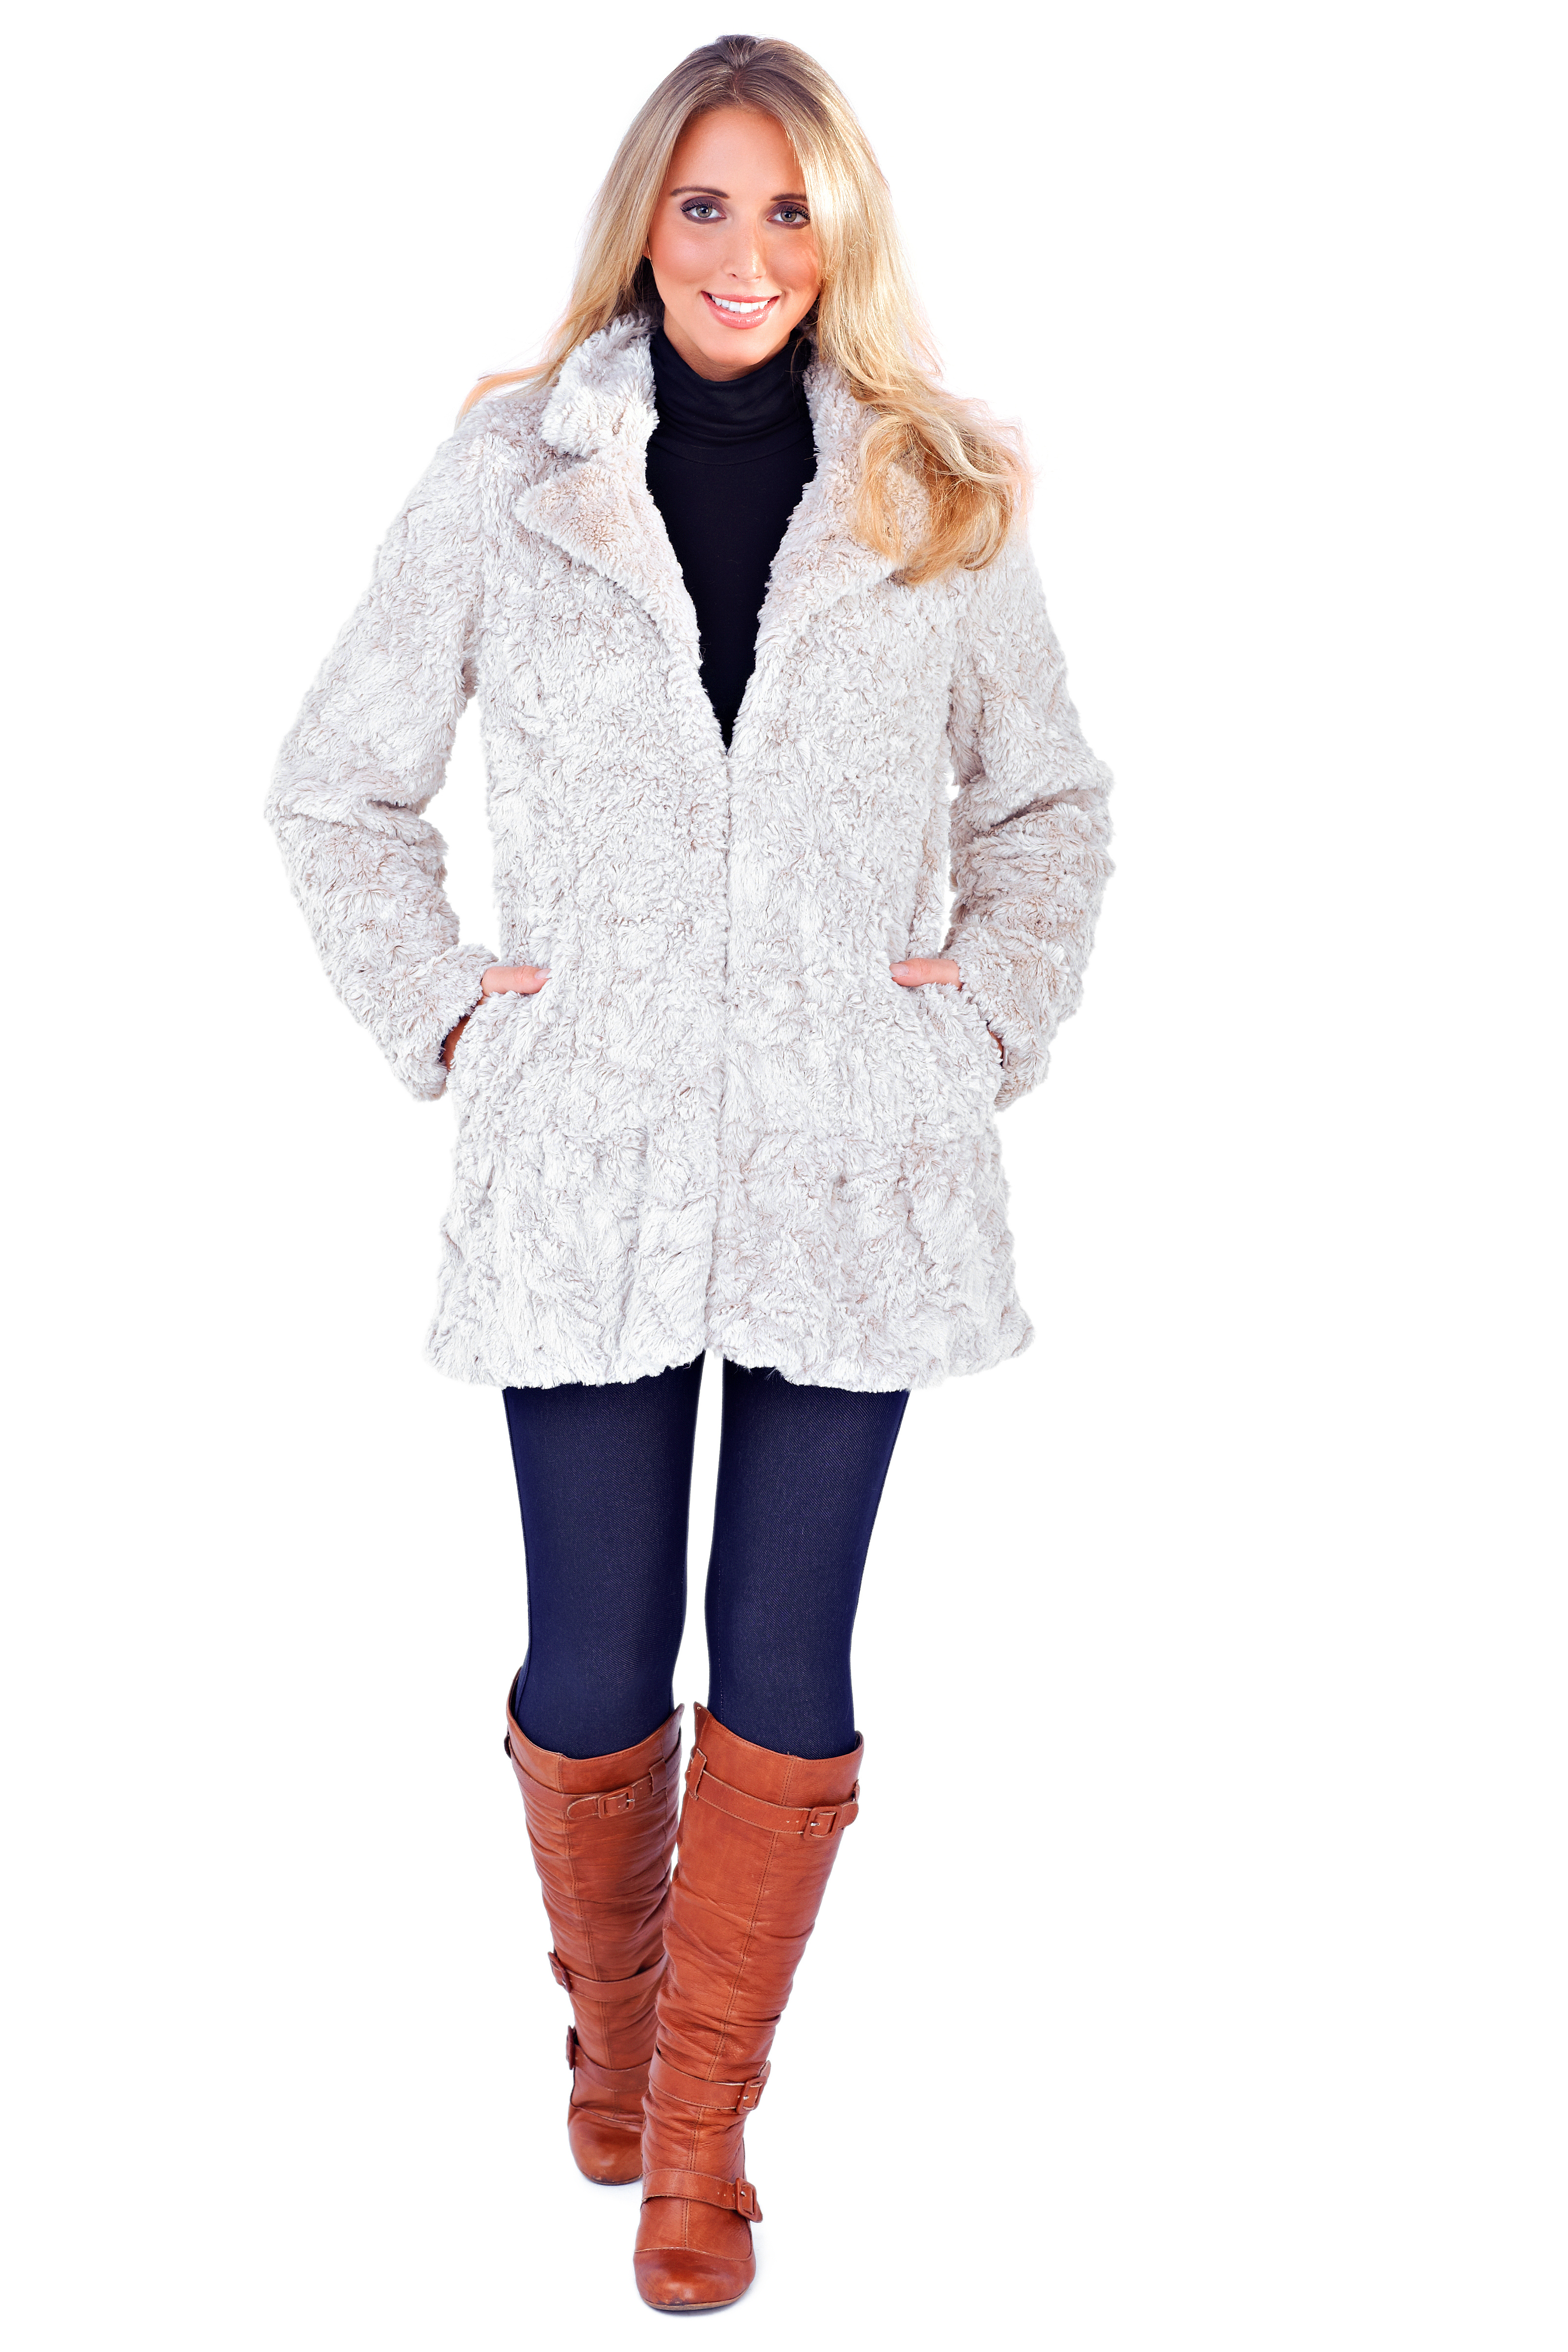 The Faux Fur Short Jacket by NA-KD Trend features a collared neckline, hook closures down the front, two side pockets, and faux fur material. Seems like you're using an old browser. Things on the website might not work as they should.